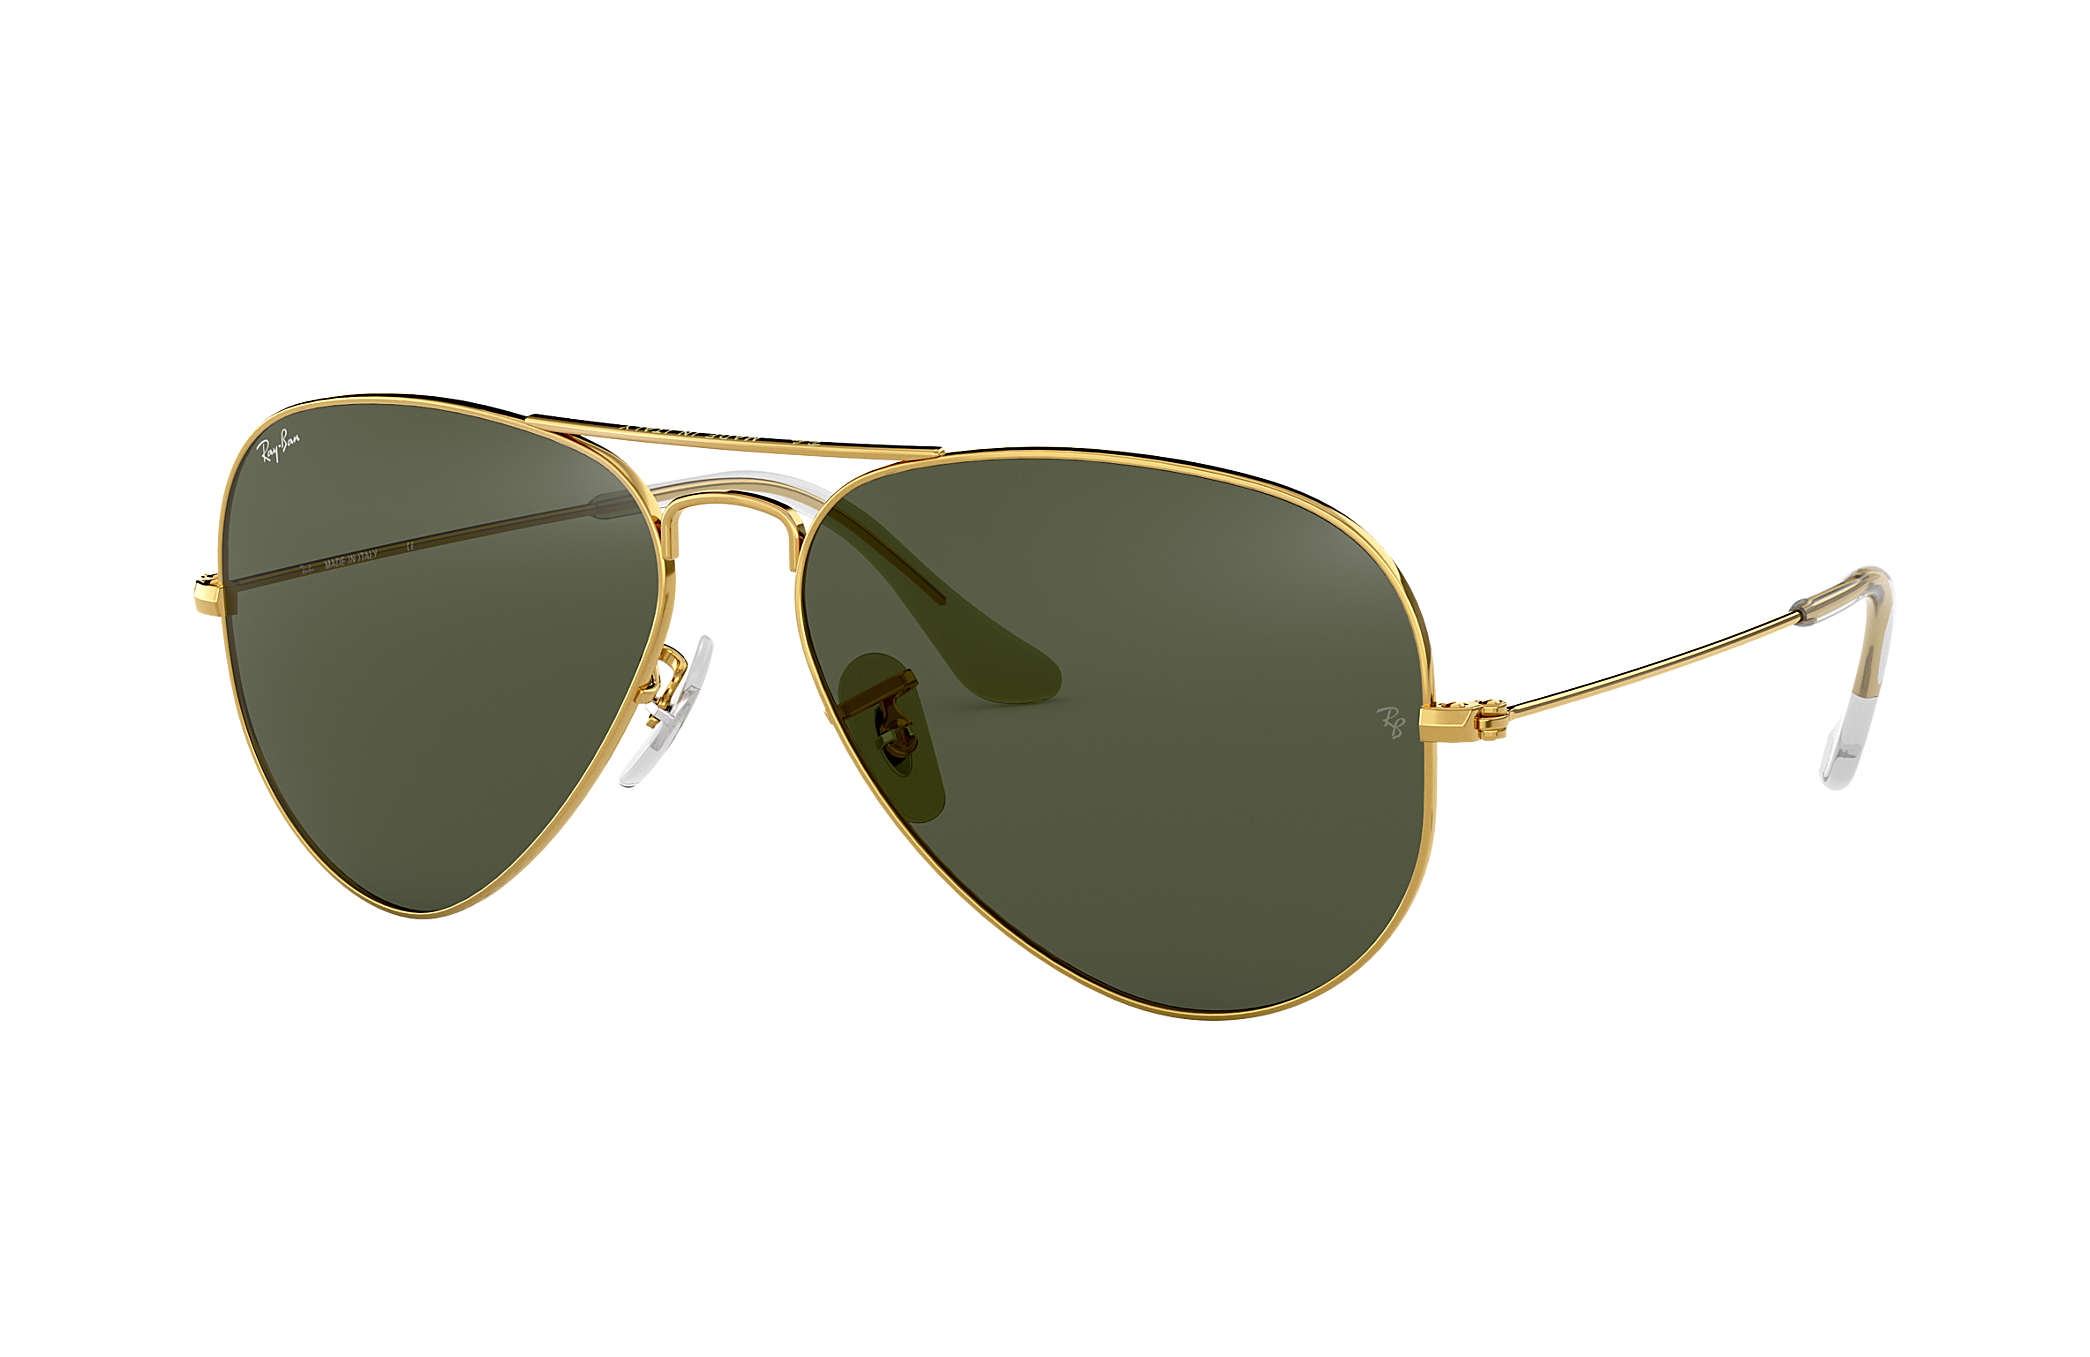 b64f7886a05 Ray-Ban Aviator Classic RB3025 Gold - Metal - Green Lenses ...